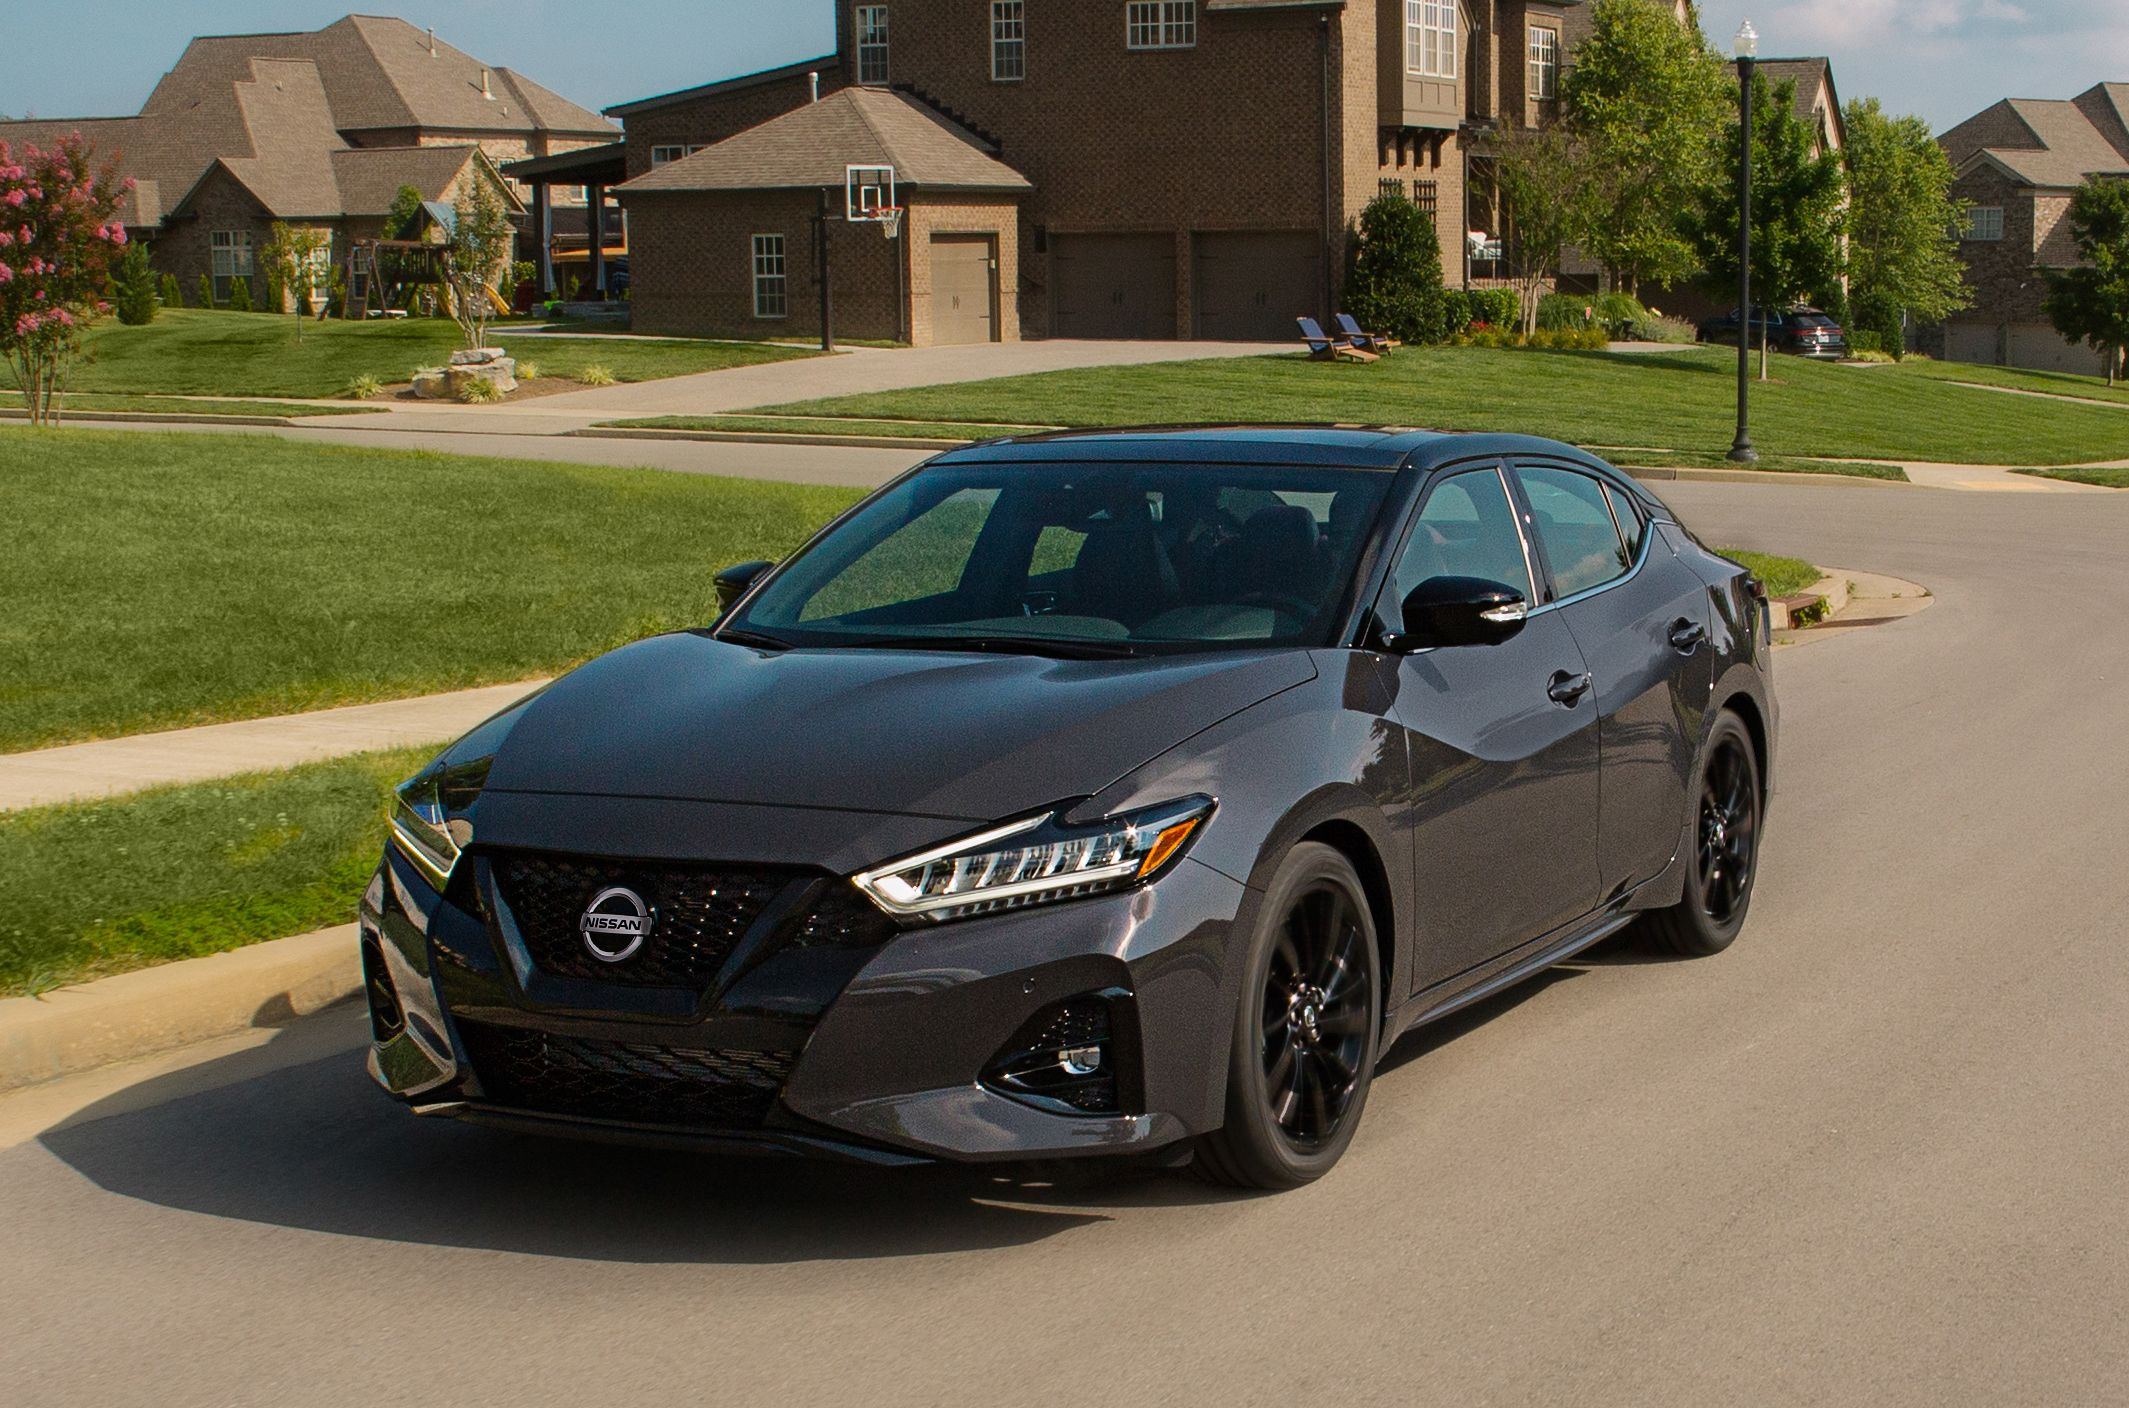 2021 Nissan Maxima Review, Pricing, and Specs